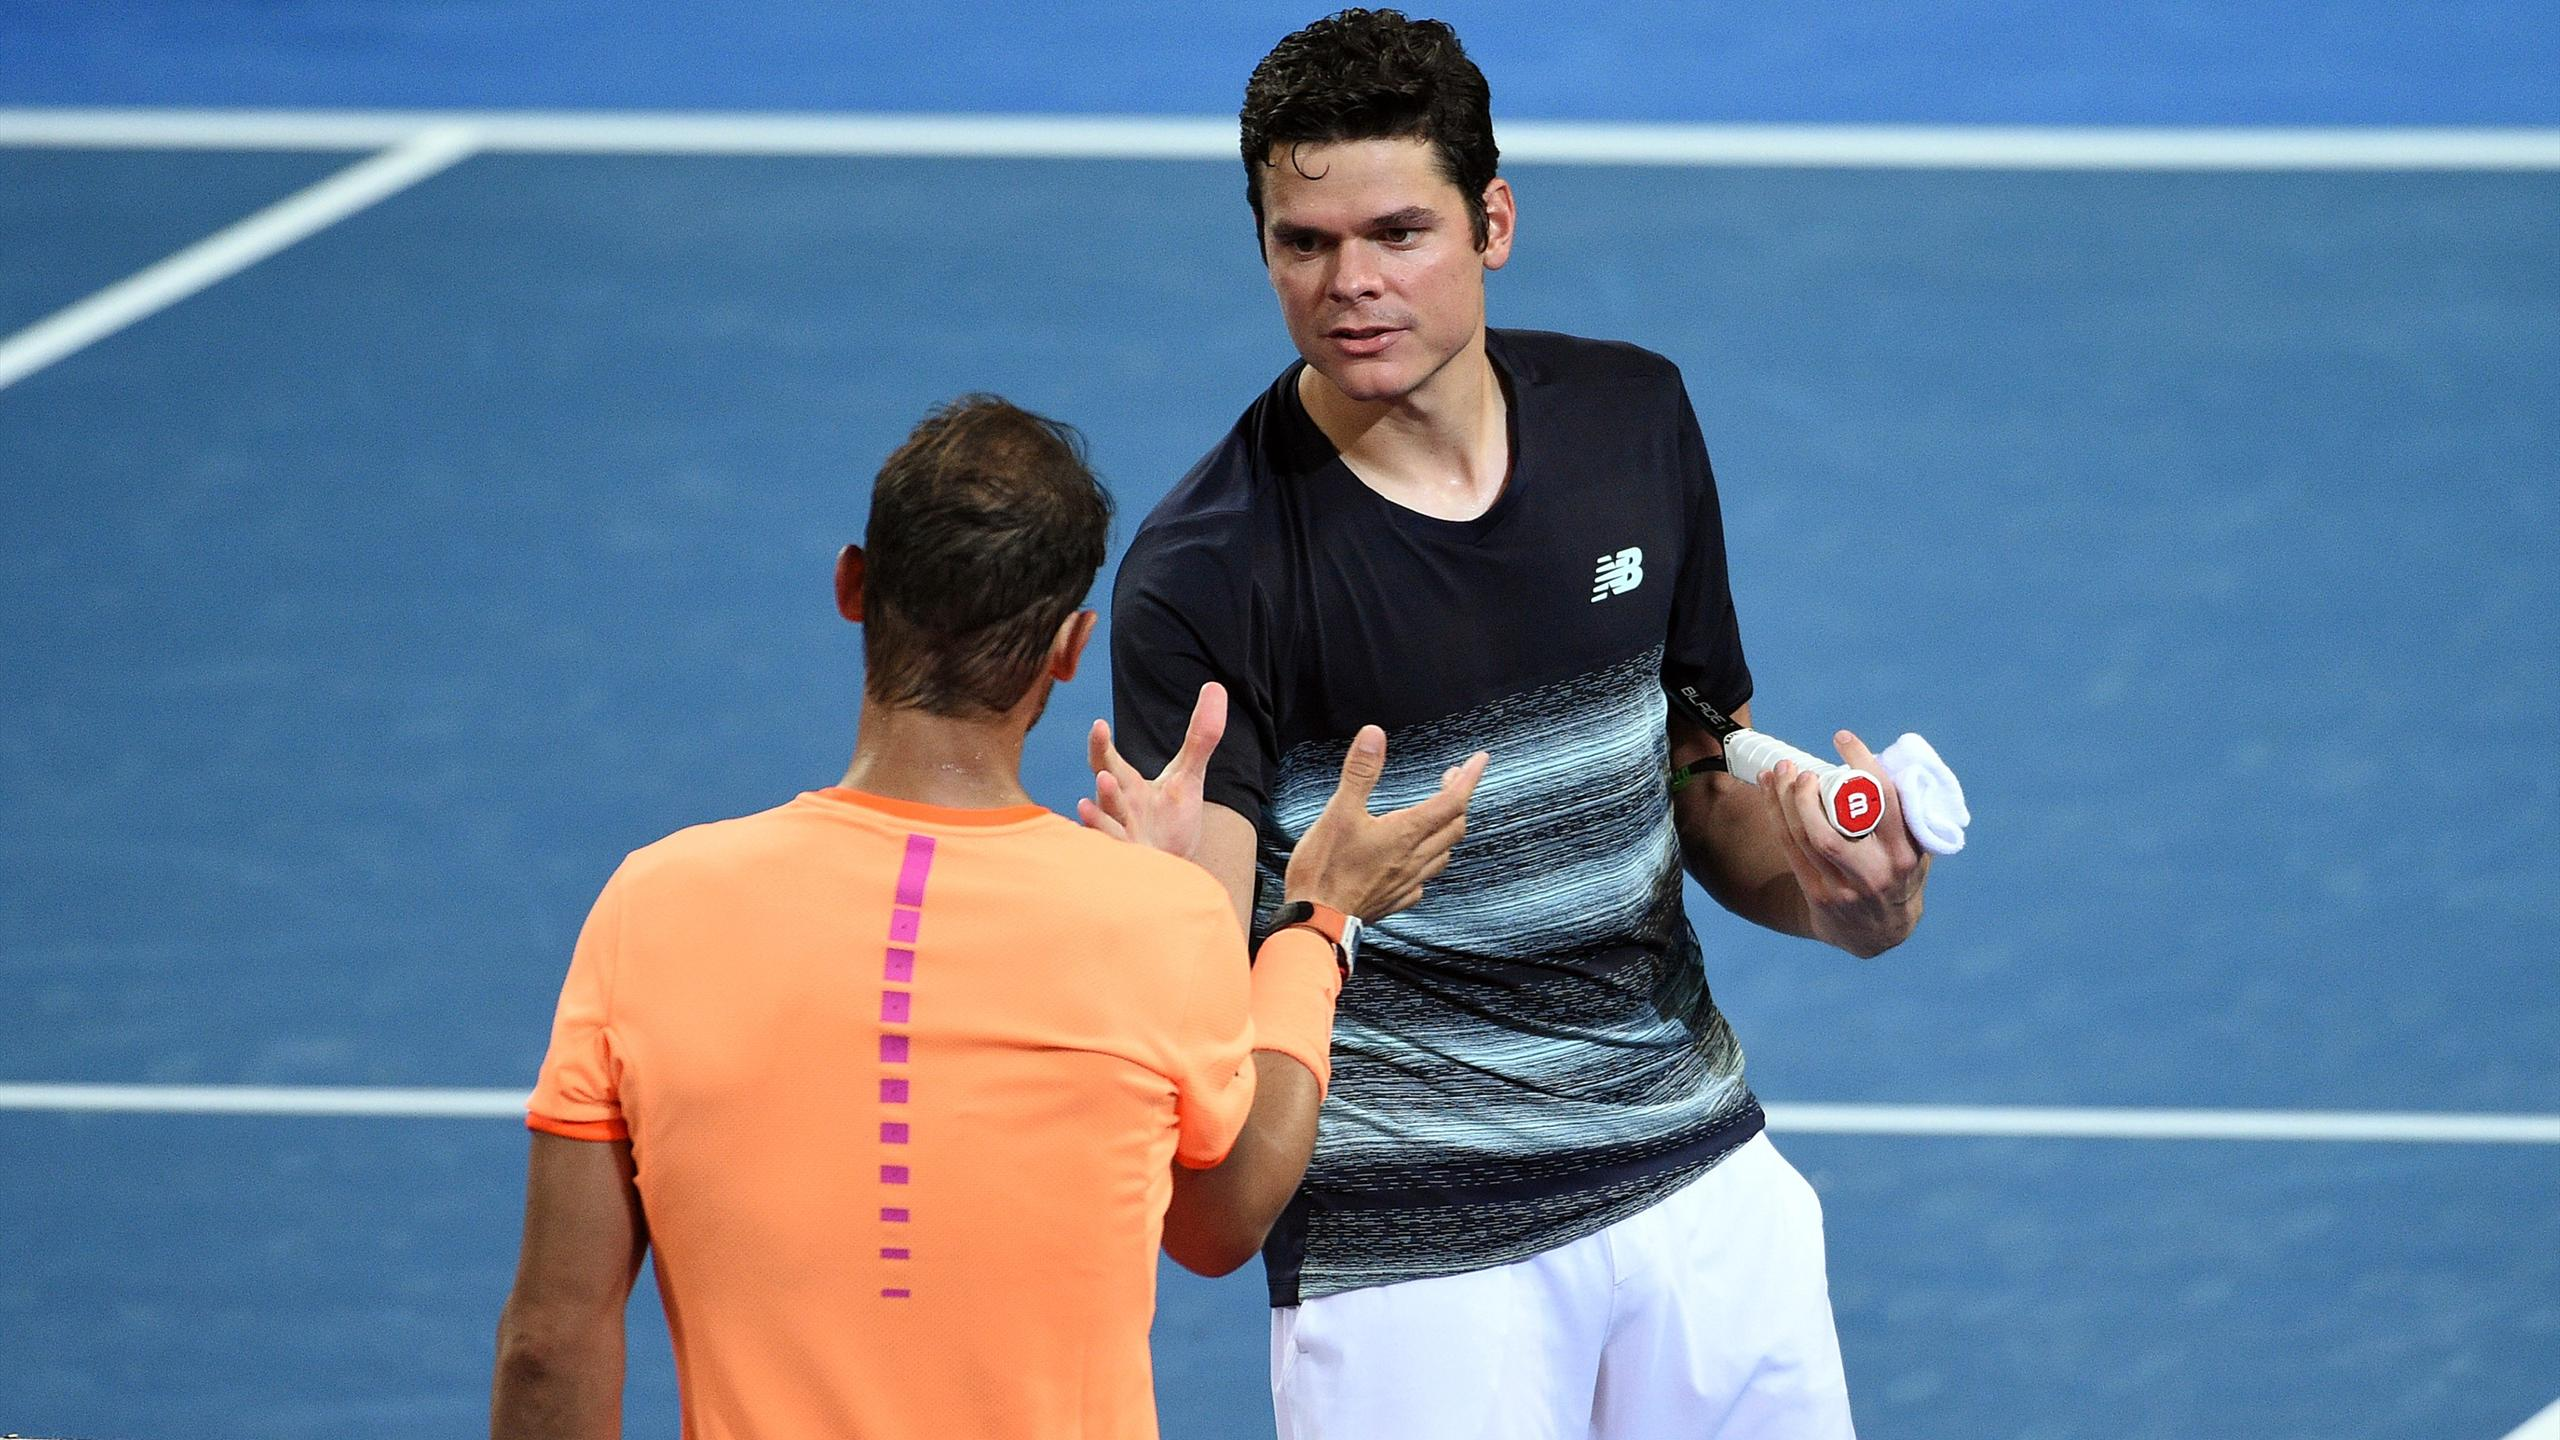 Milos Raonic shakes hands with Rafael Nadal after their match in Brisbane